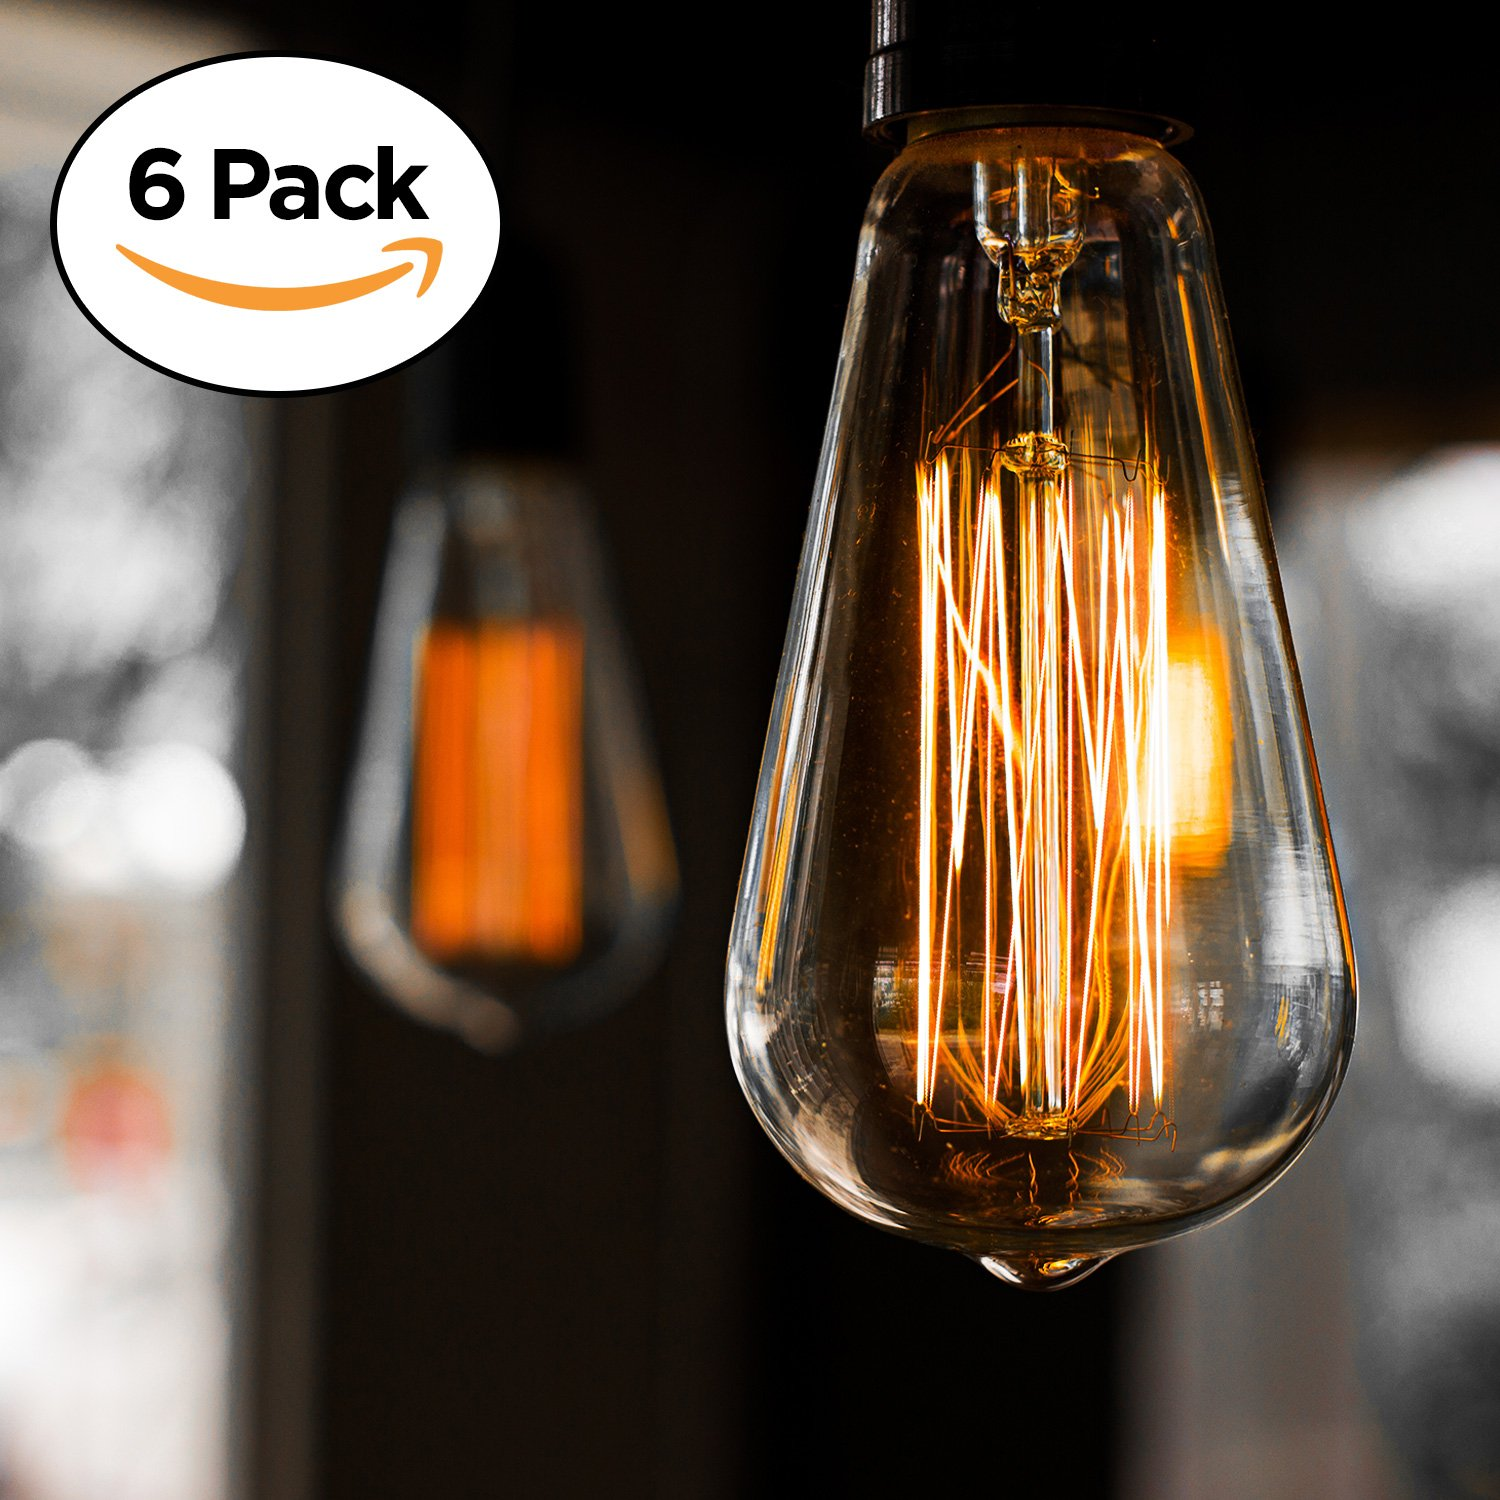 6-Pack Edison Light Bulb, Antique Vintage Style Light, Amber Warm, Dimmable (60w/110v) by Basics Hardware